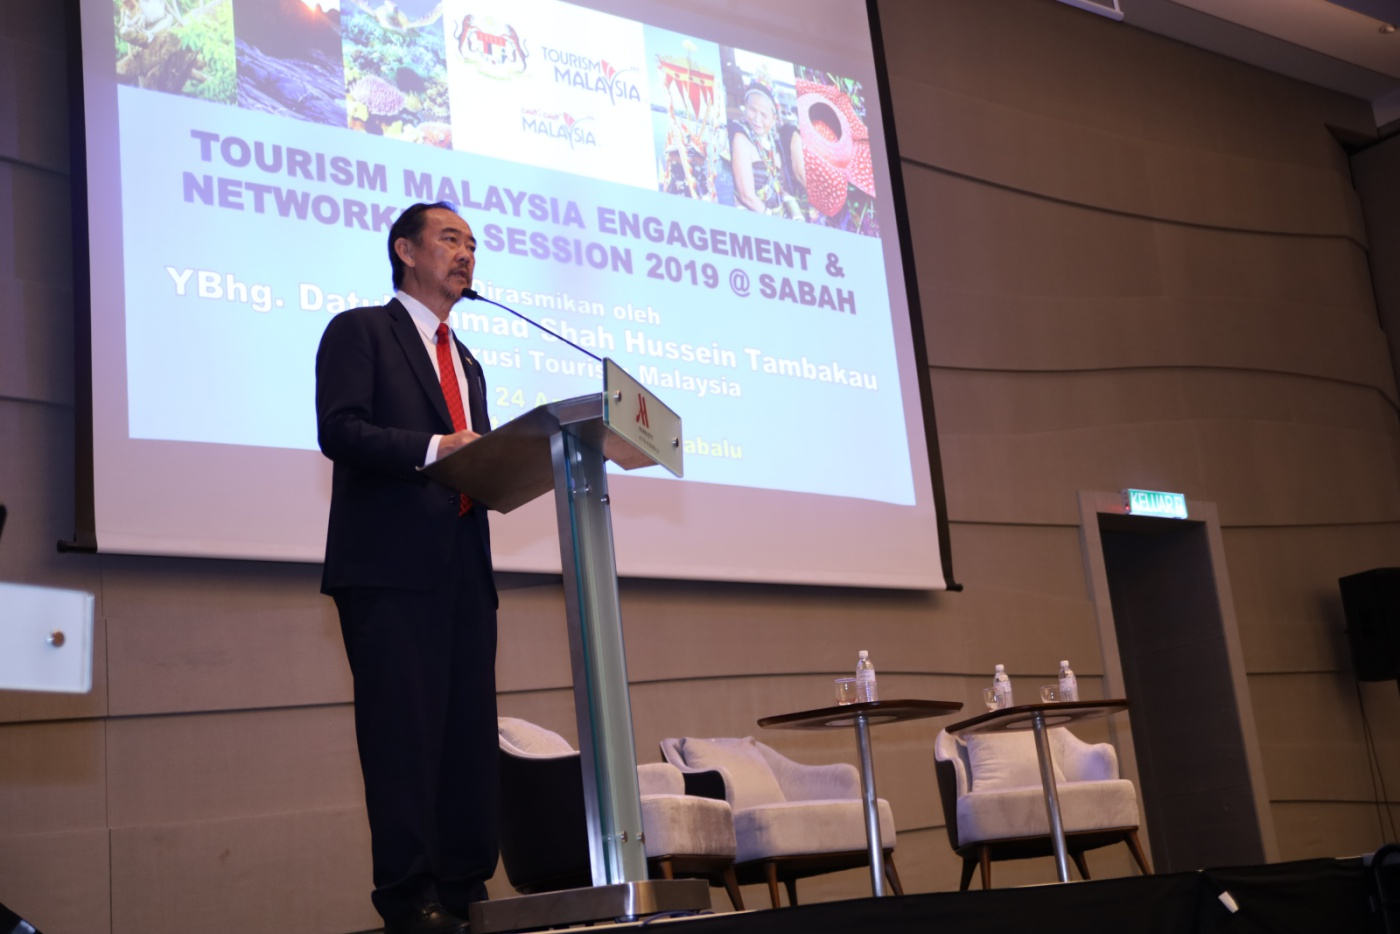 OURISM MALAYSIA ORGANISES ENGAGEMENT SESSION WITH SABAH TOURISM INDUSTRY PLAYERS